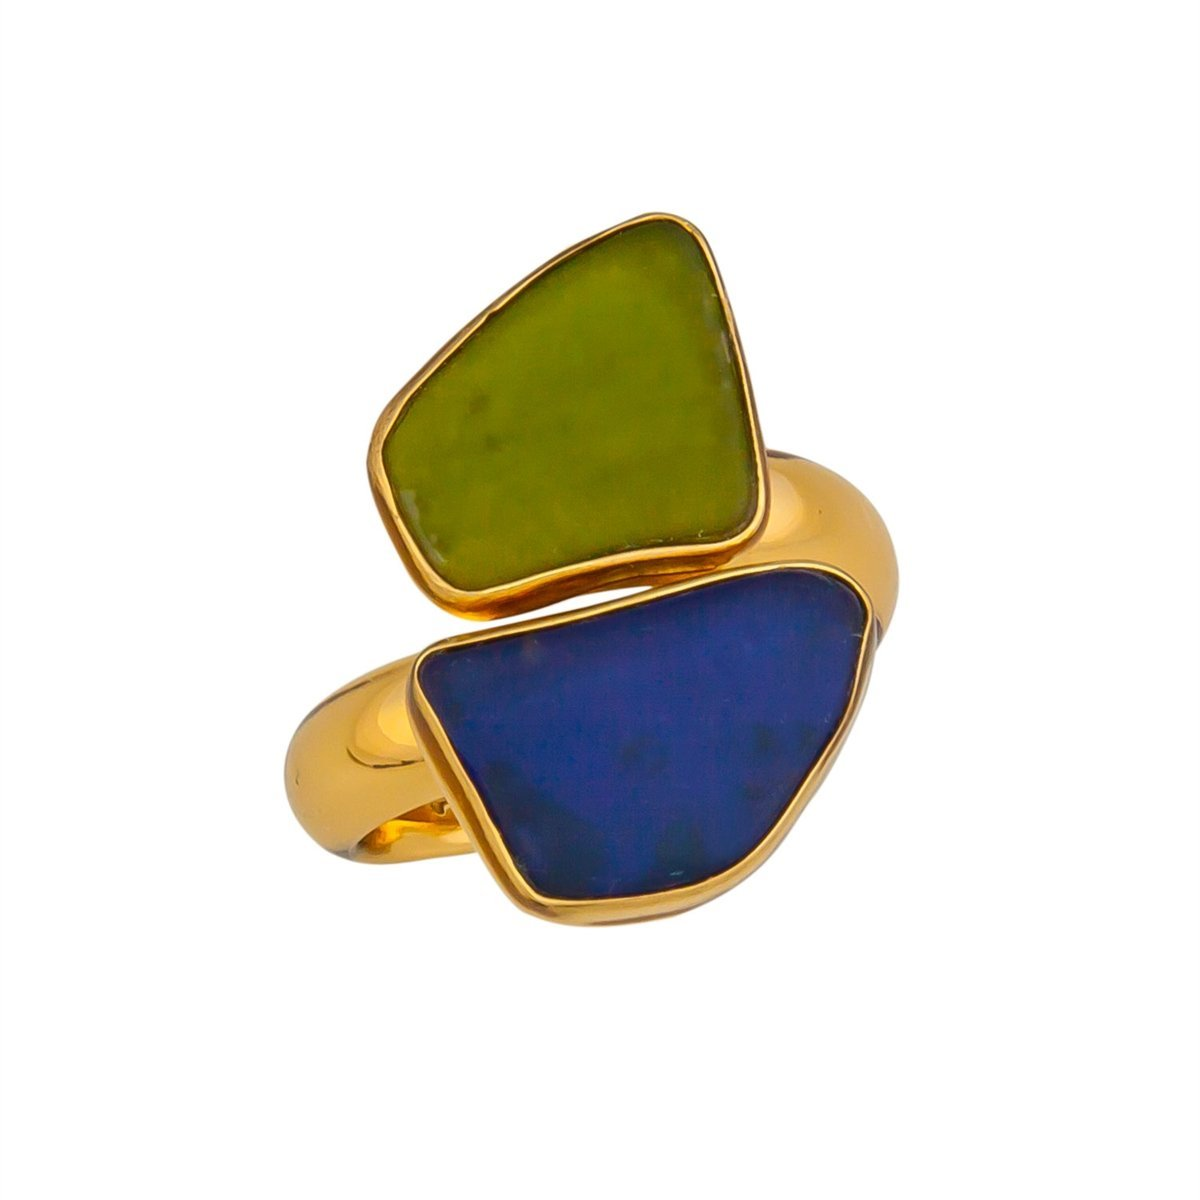 Alchemia Recycled Glass Bypass Adjustable Ring | Charles Albert Jewelry